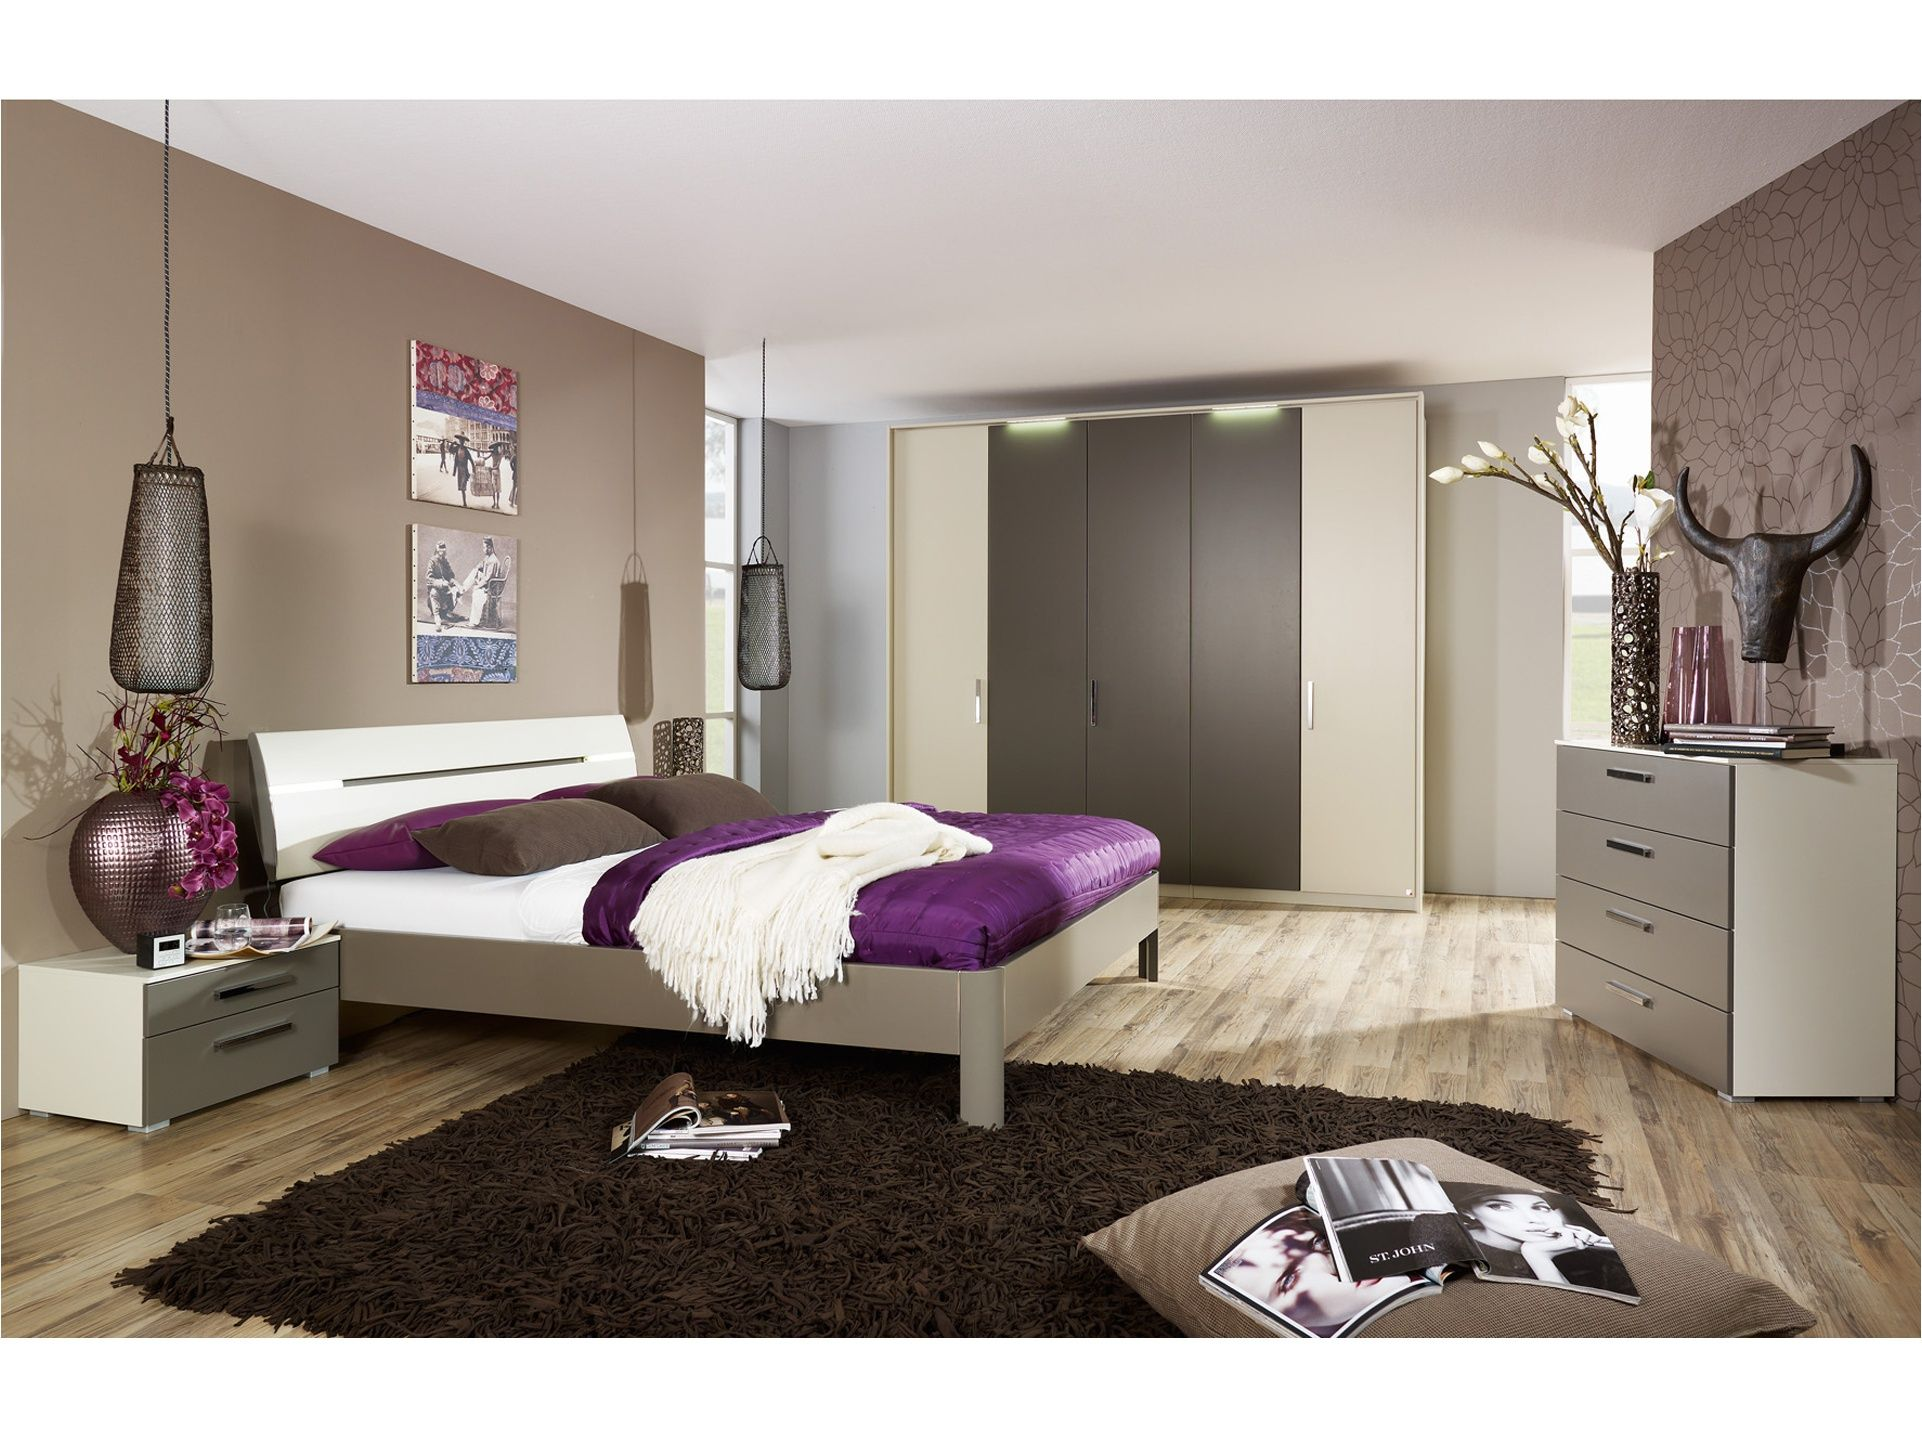 Chambre coucher adulte moderne deco pinterest for Photo peinture murale chambre adulte